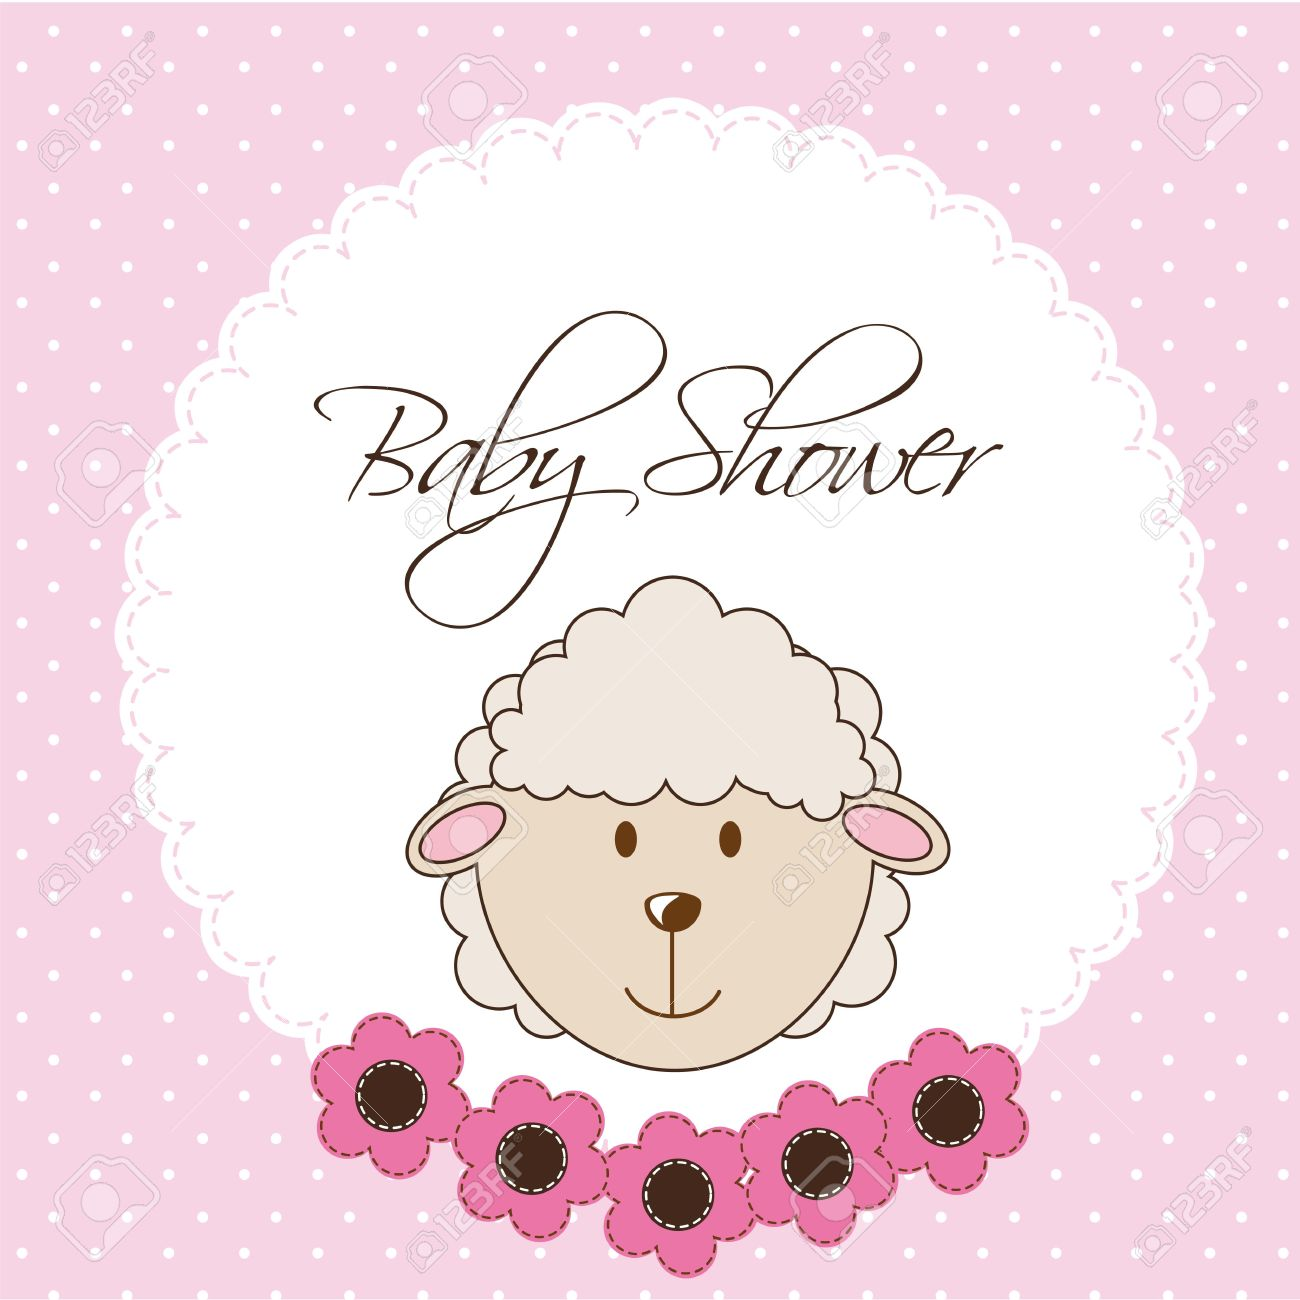 pink baby shower card with sheep. vector illustration Stock Vector - 14553035